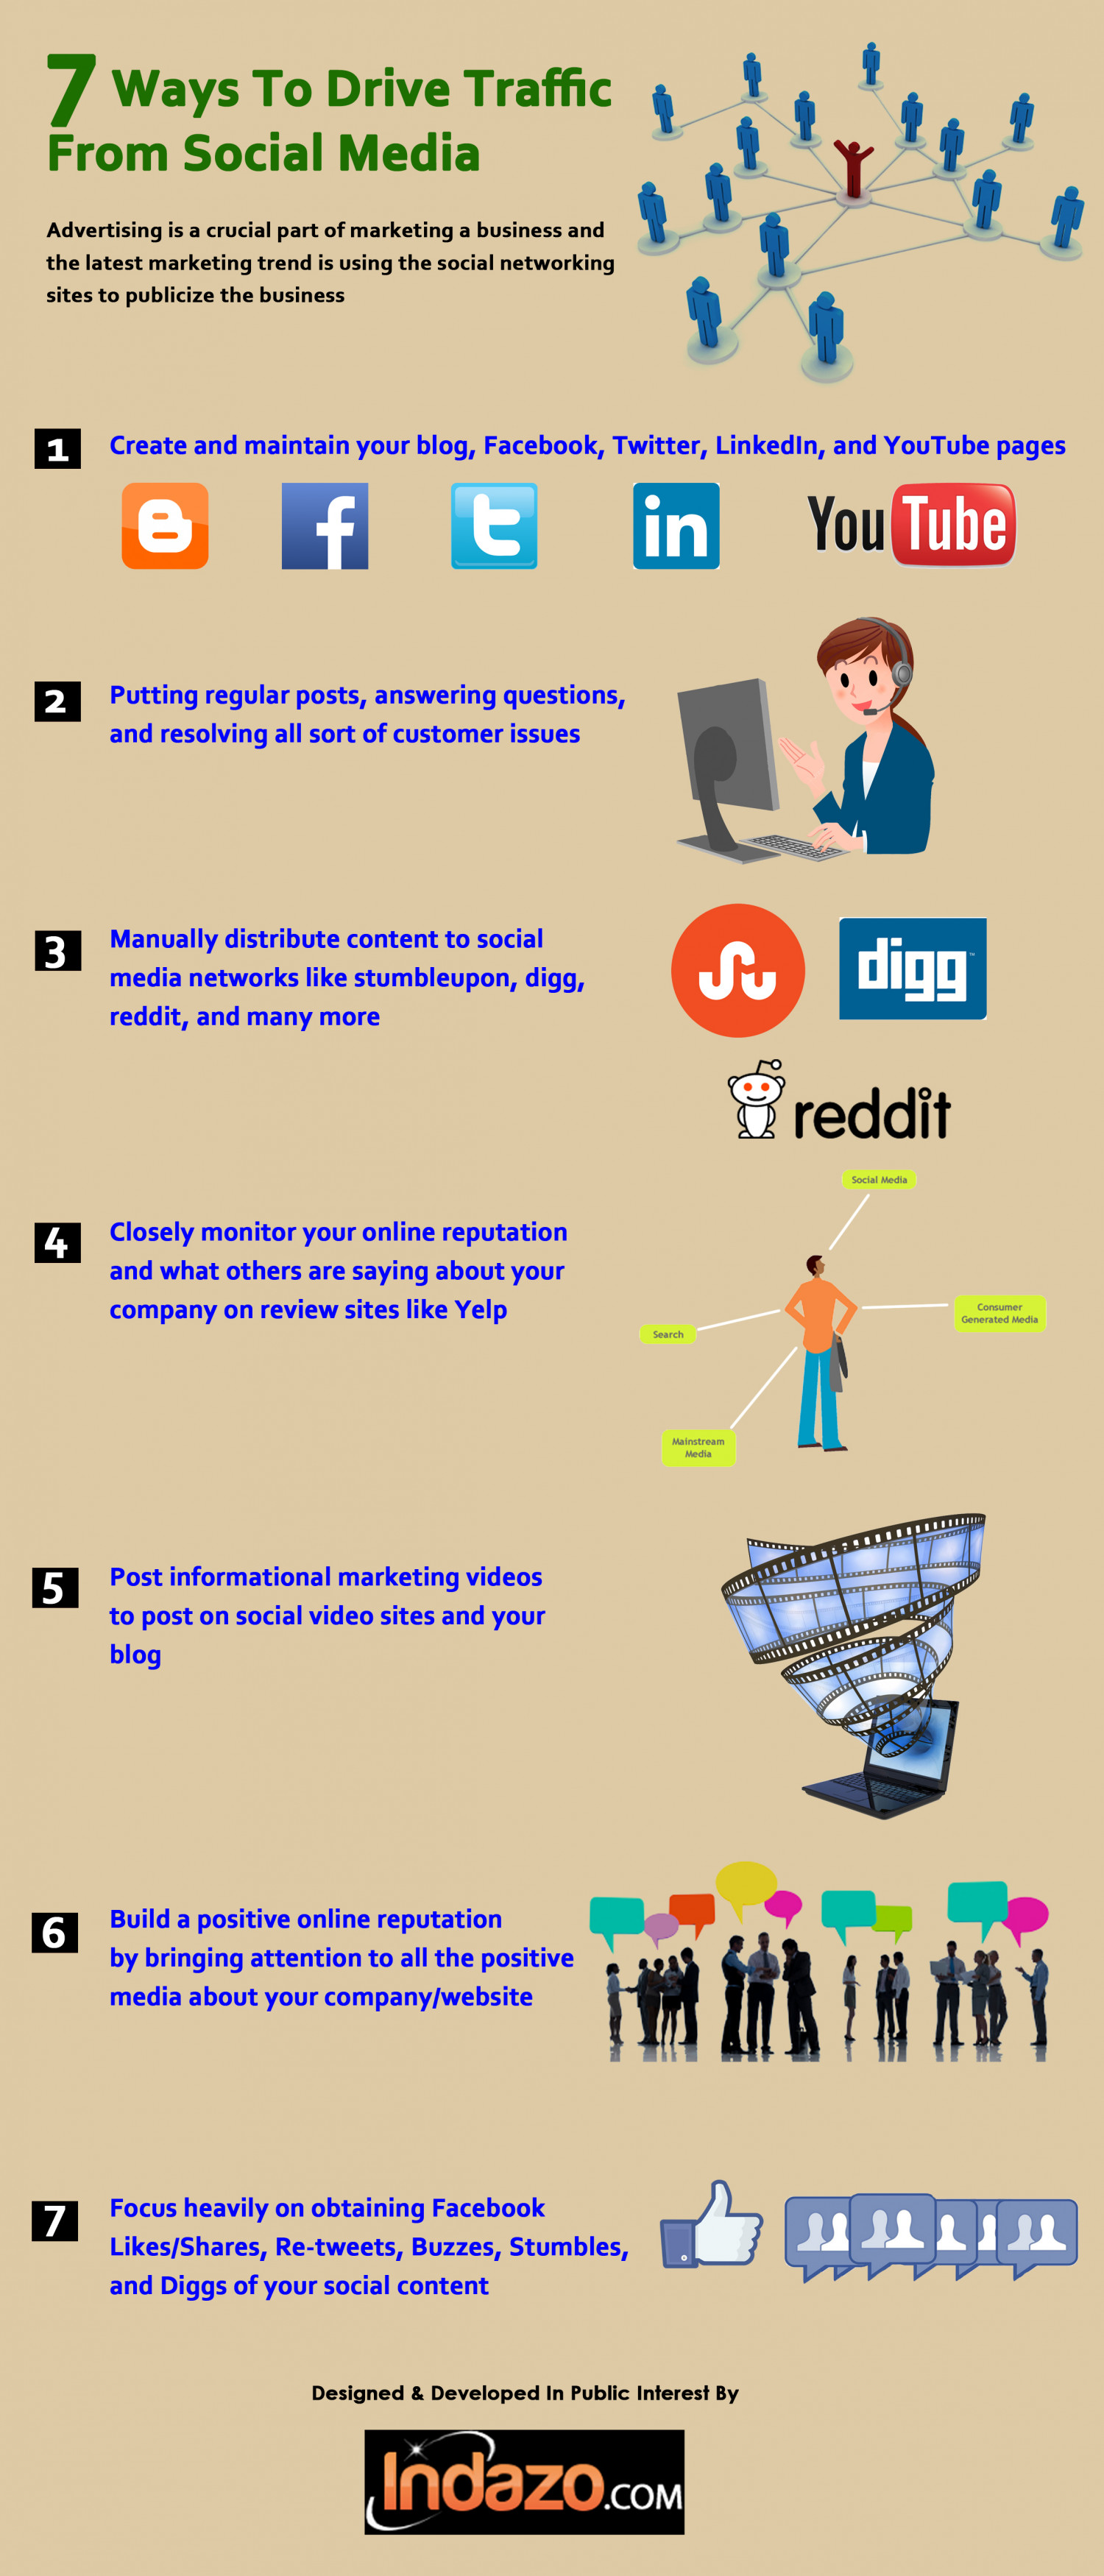 7 Ways To Drive Traffic From Social Media Infographic